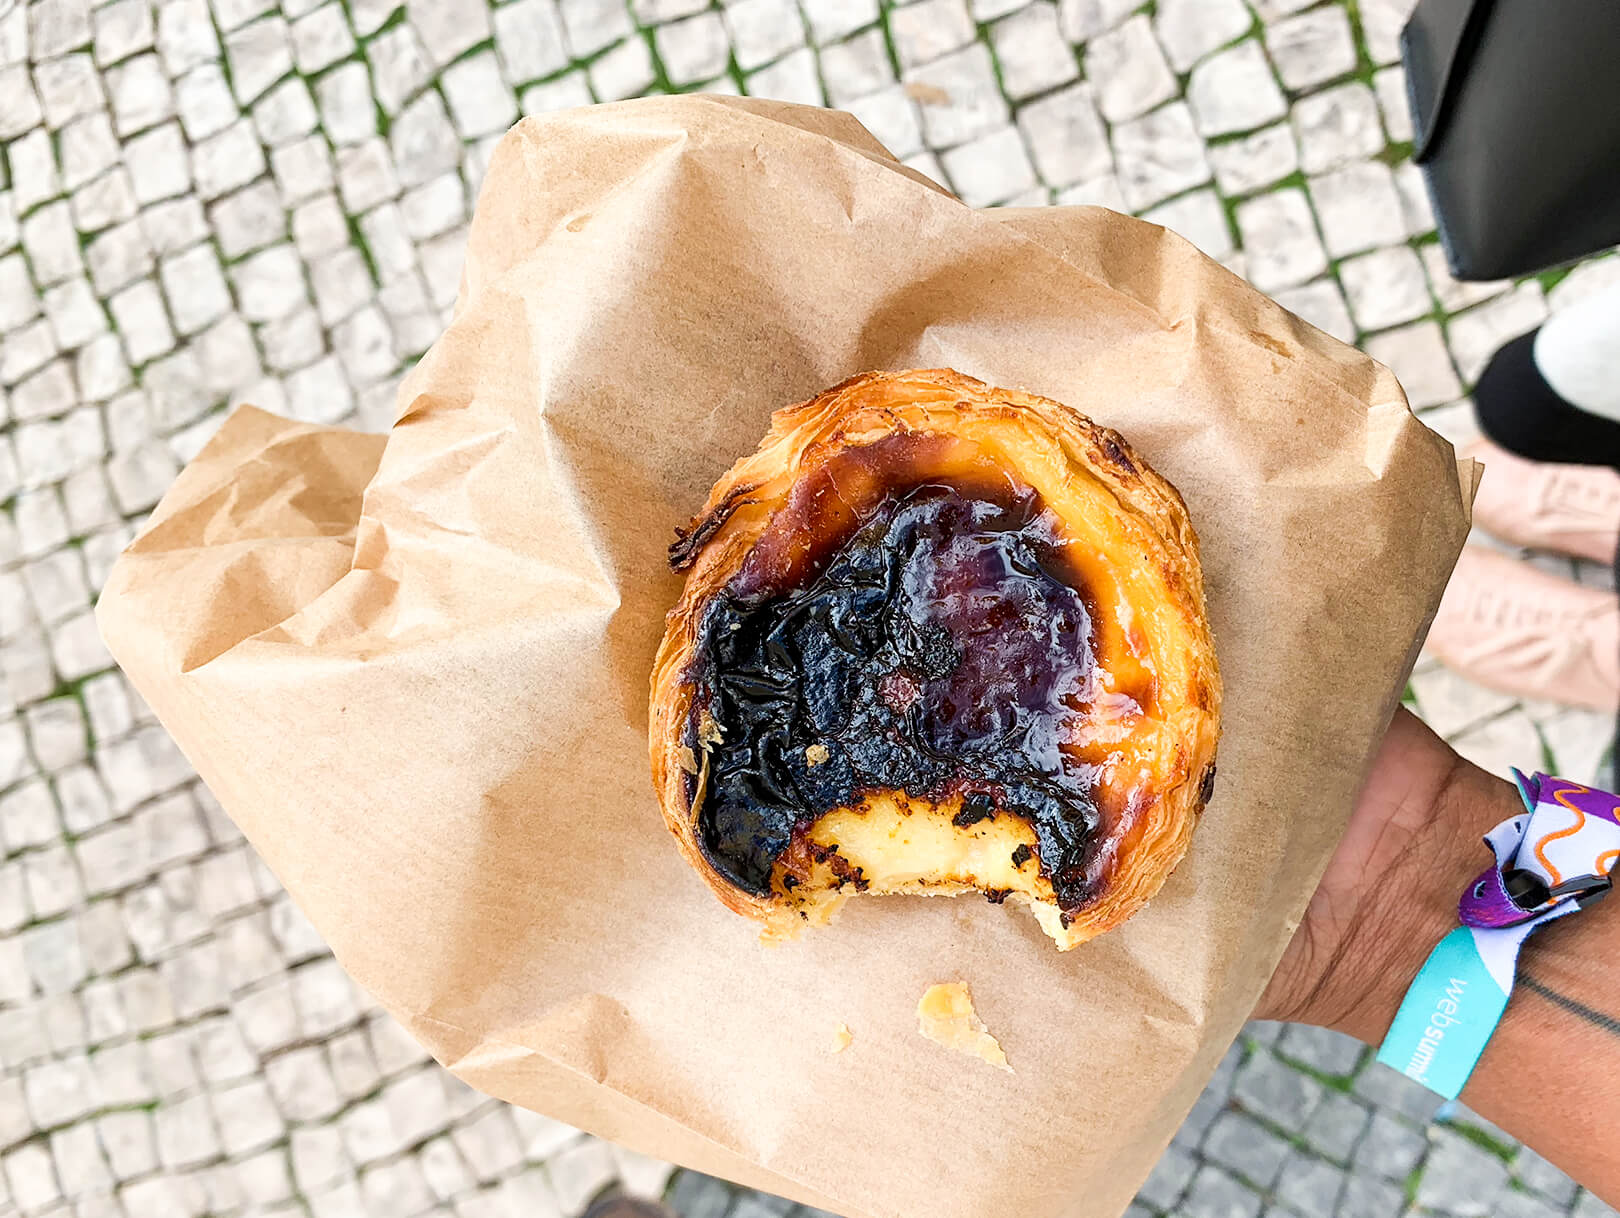 indian goods company blog stories inspiration lisbon pastel de nata weekend reading inspiration link pack